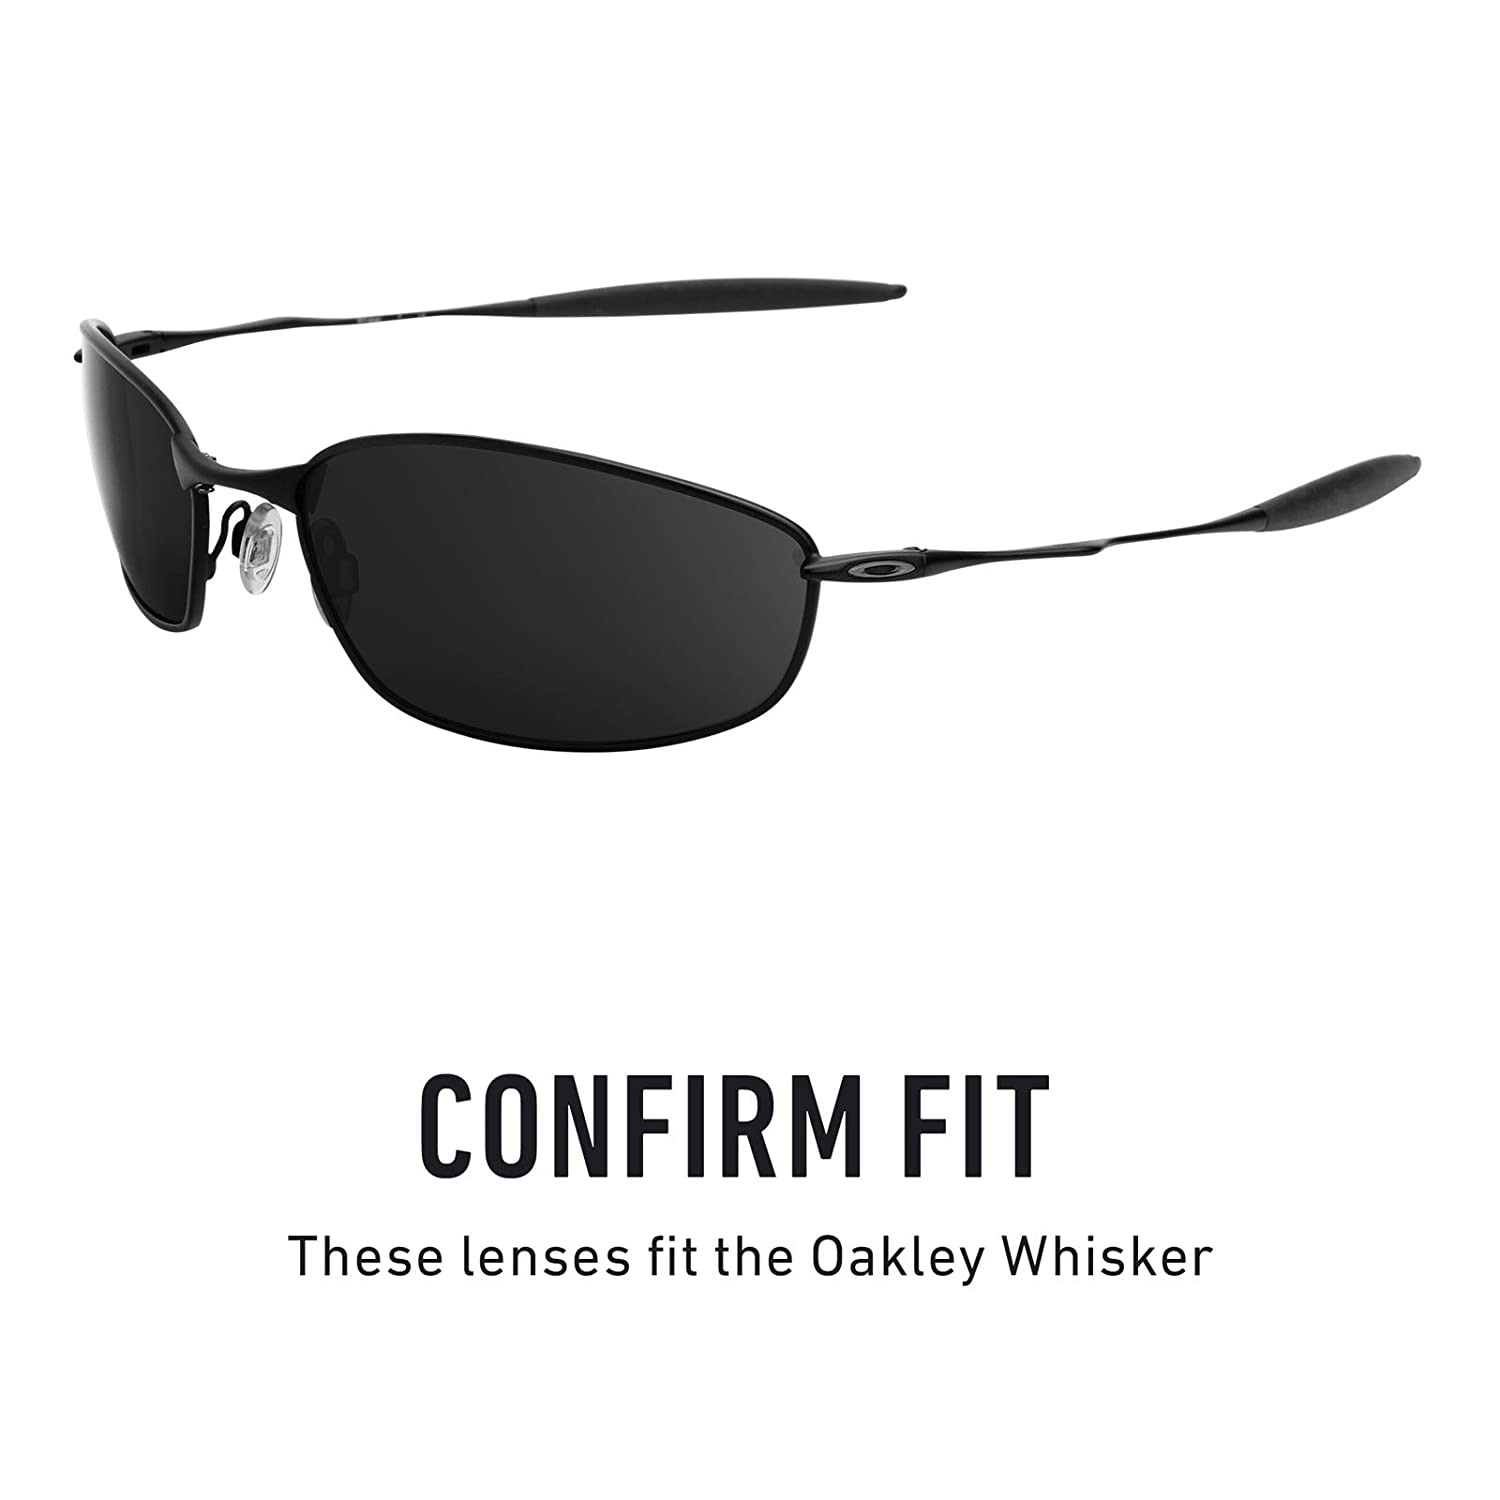 001085715d Revant Polarized Replacement Lenses for Oakley Whisker Black Chrome  MirrorShield®  Amazon.ca  Sports   Outdoors